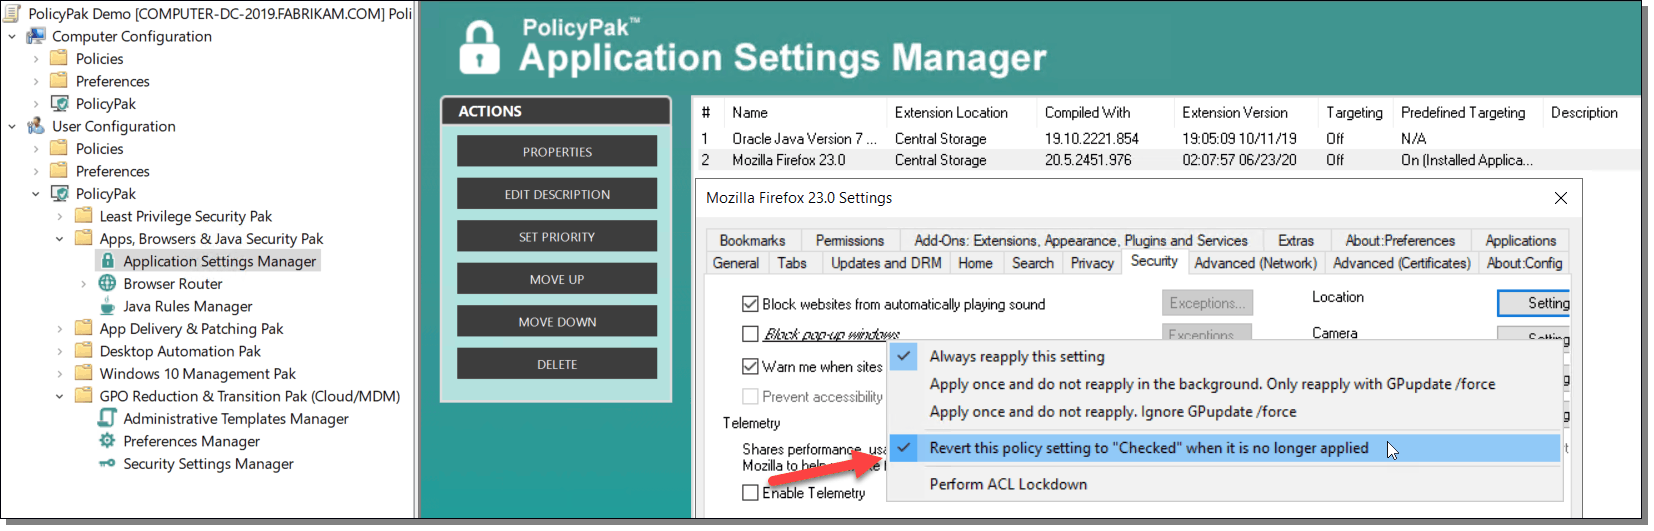 PolicyPak Application Settings Manager Configuration Table